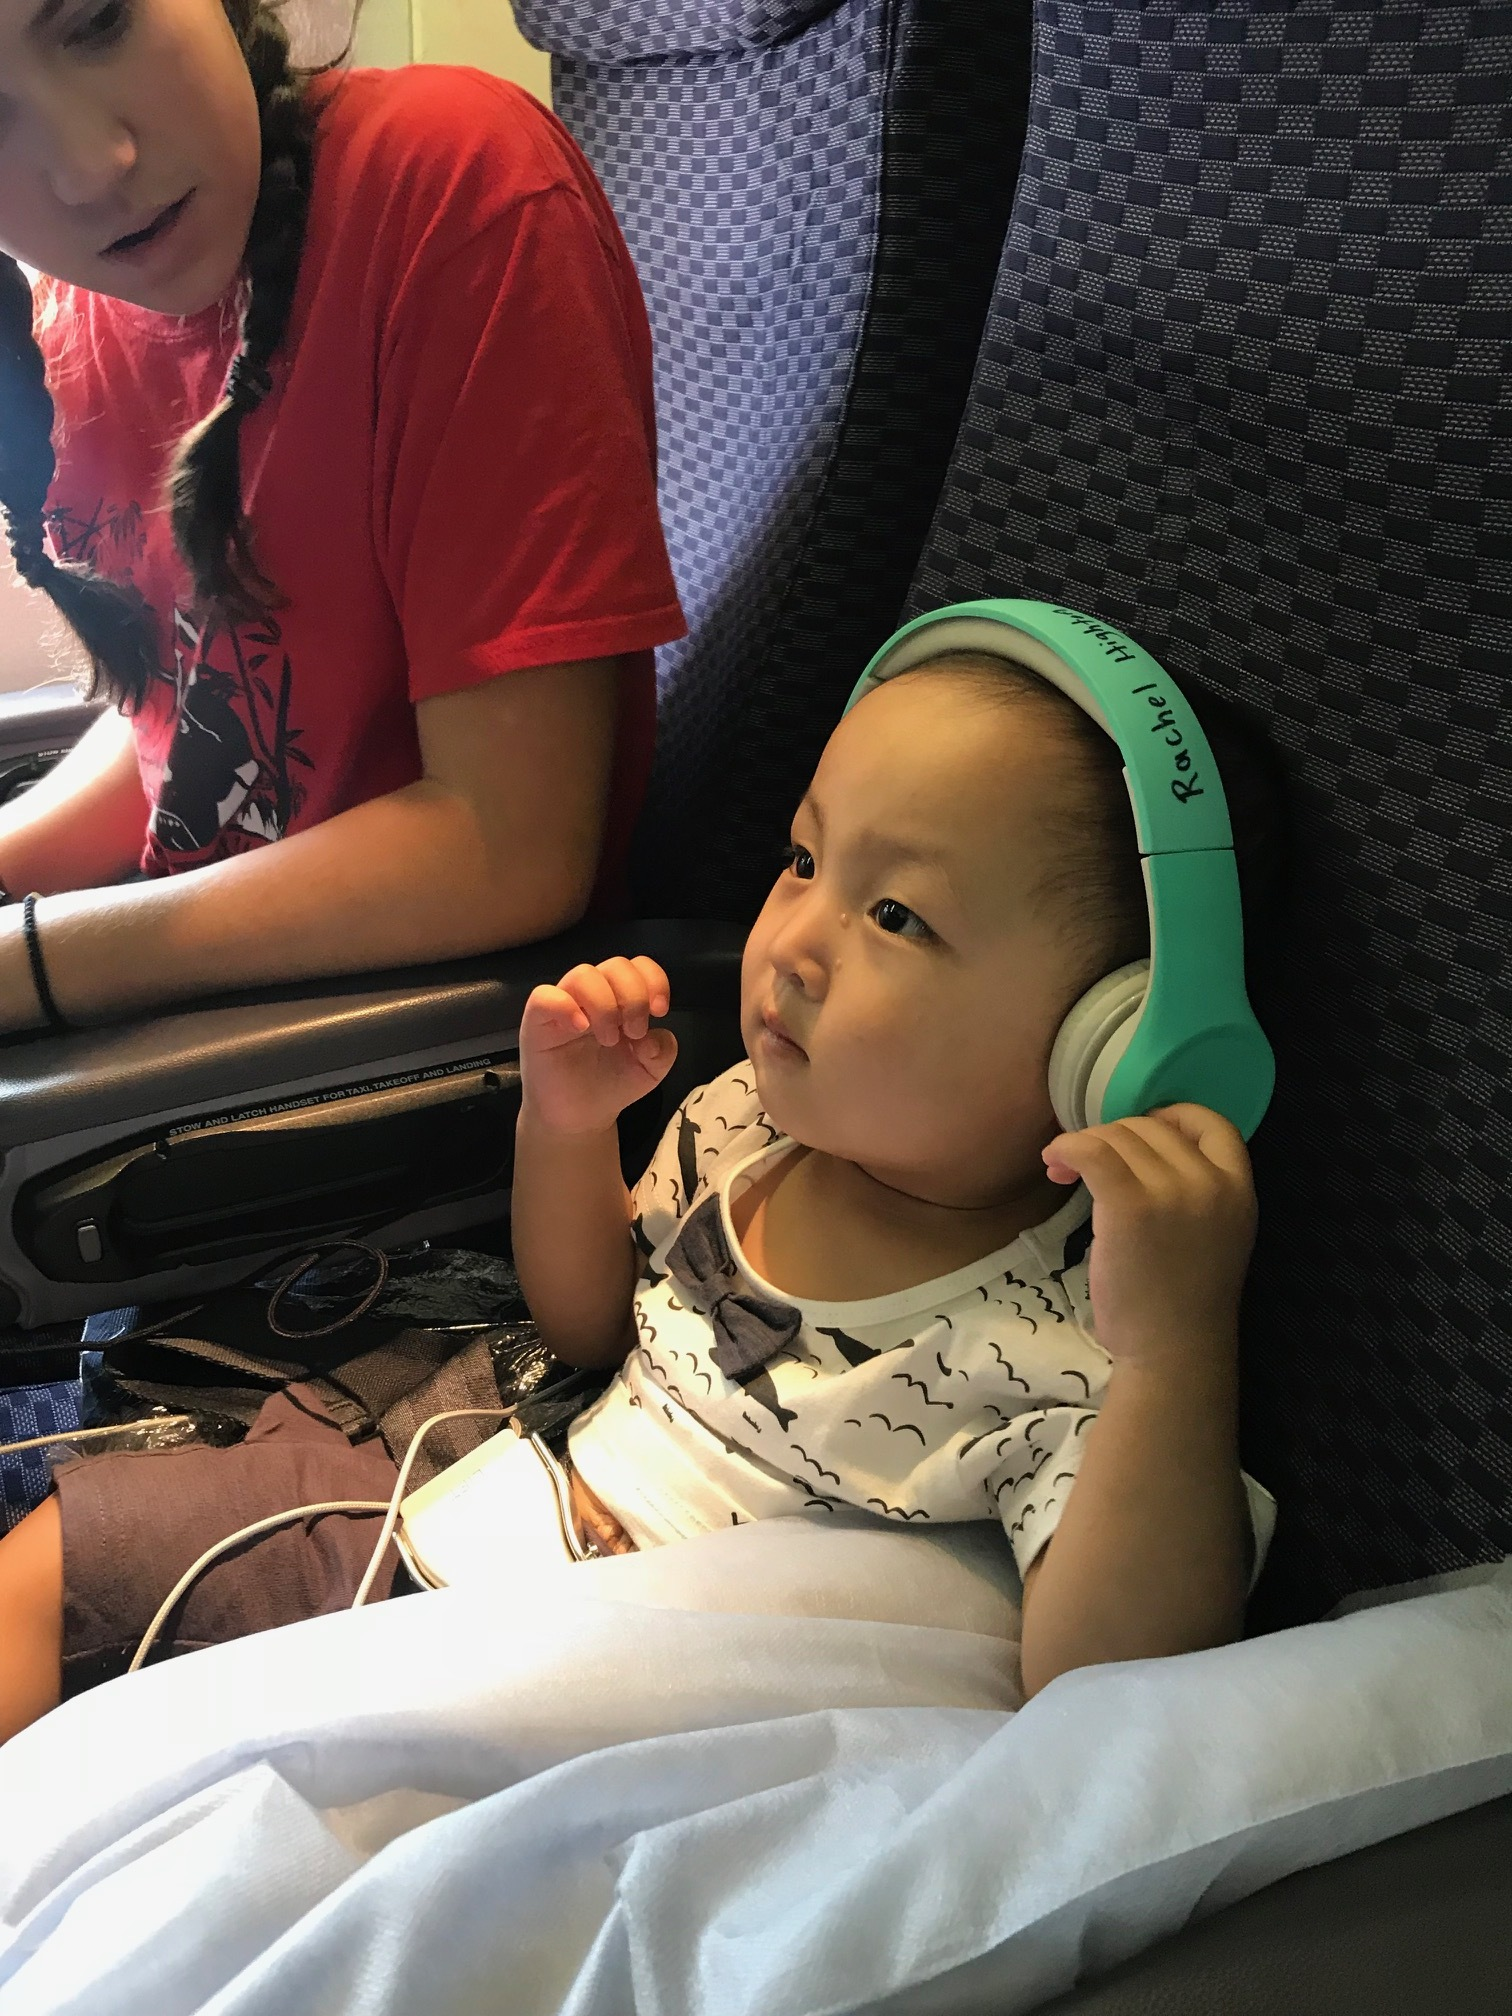 He kept these on less than 30 seconds... I was really hoping he would become a movie junkie on the plane.